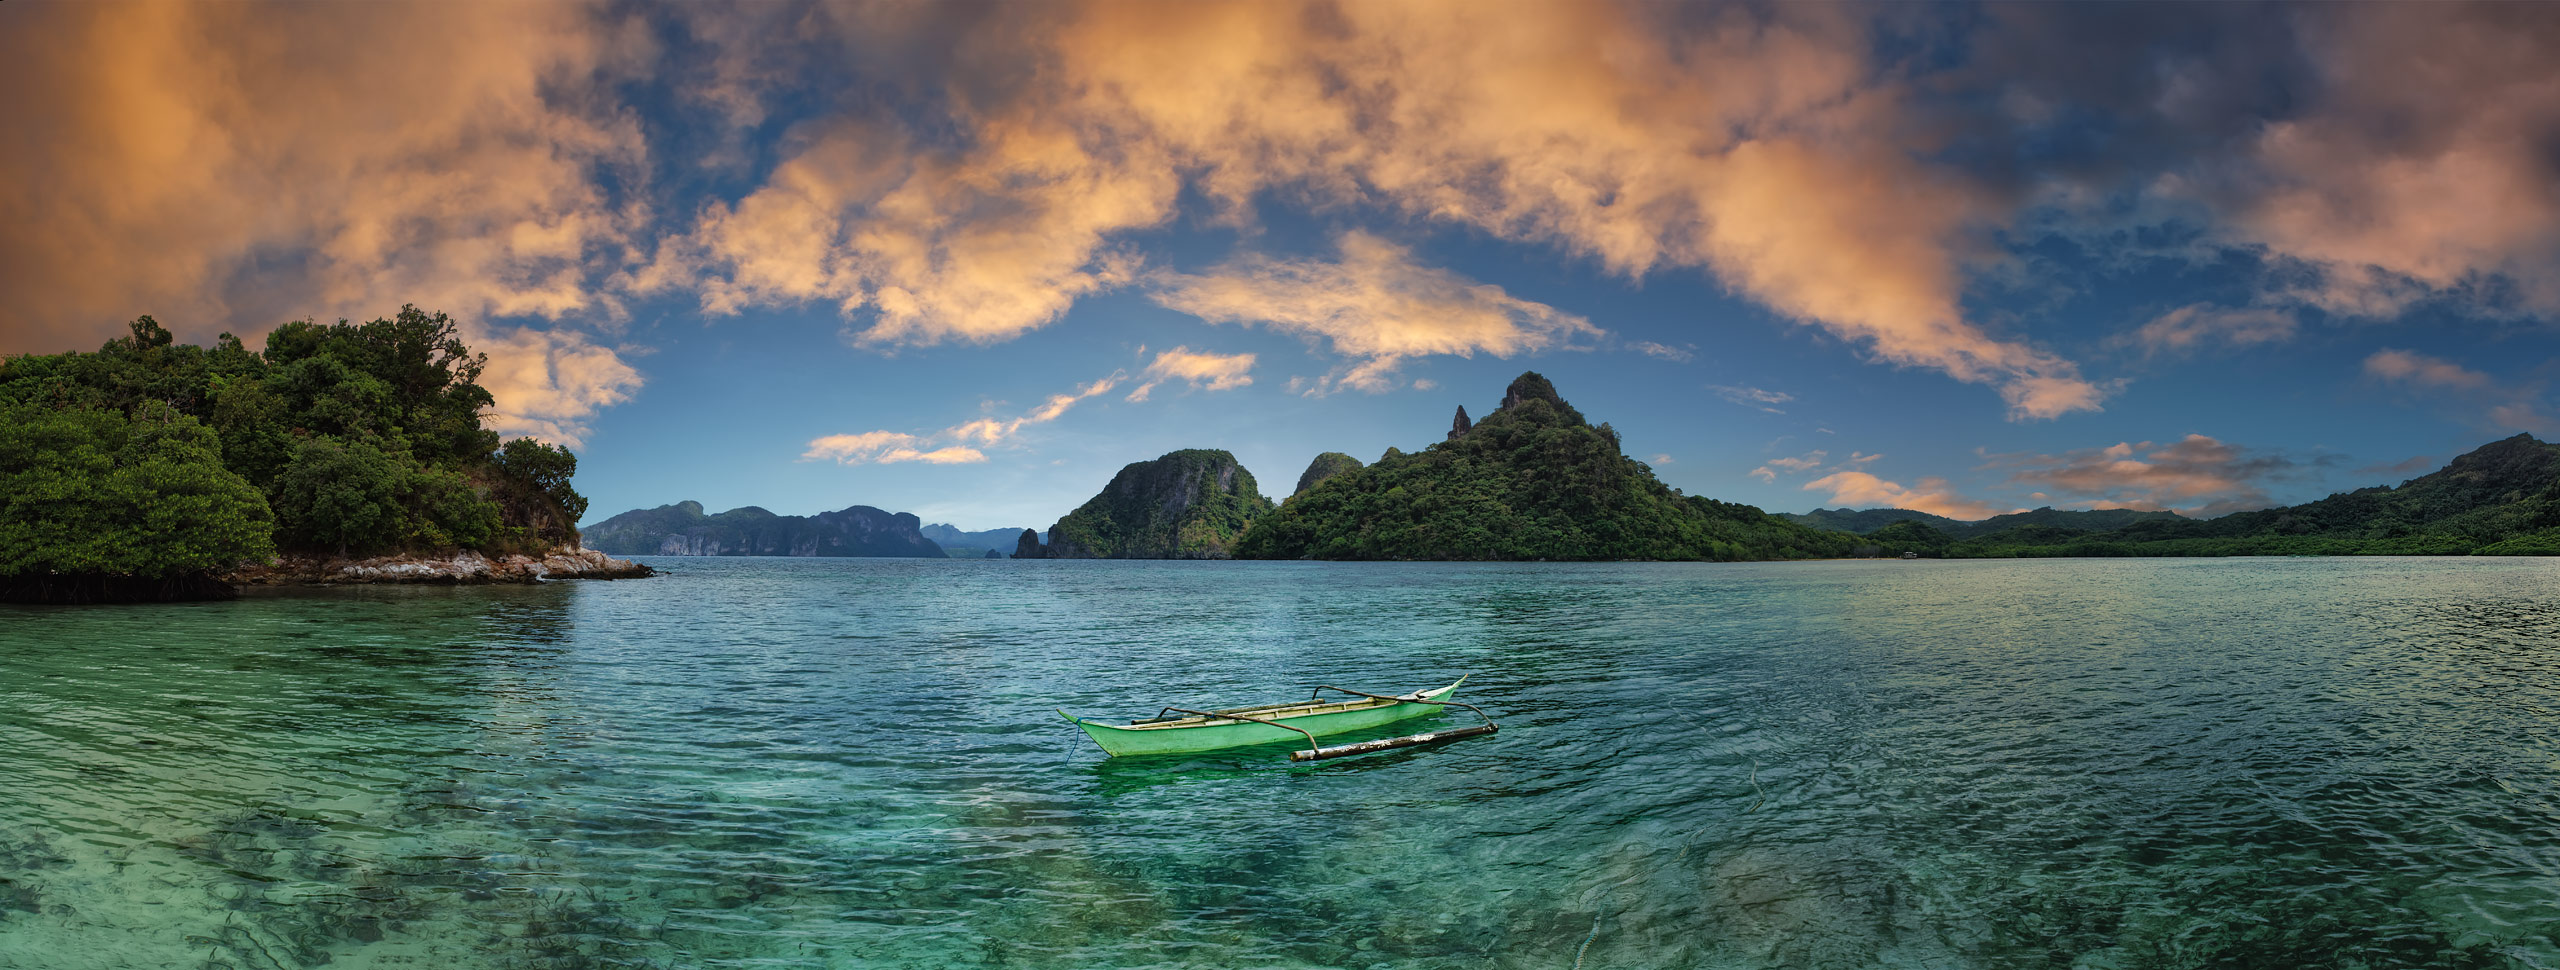 Small outrigger boat, Palawan, Philippines